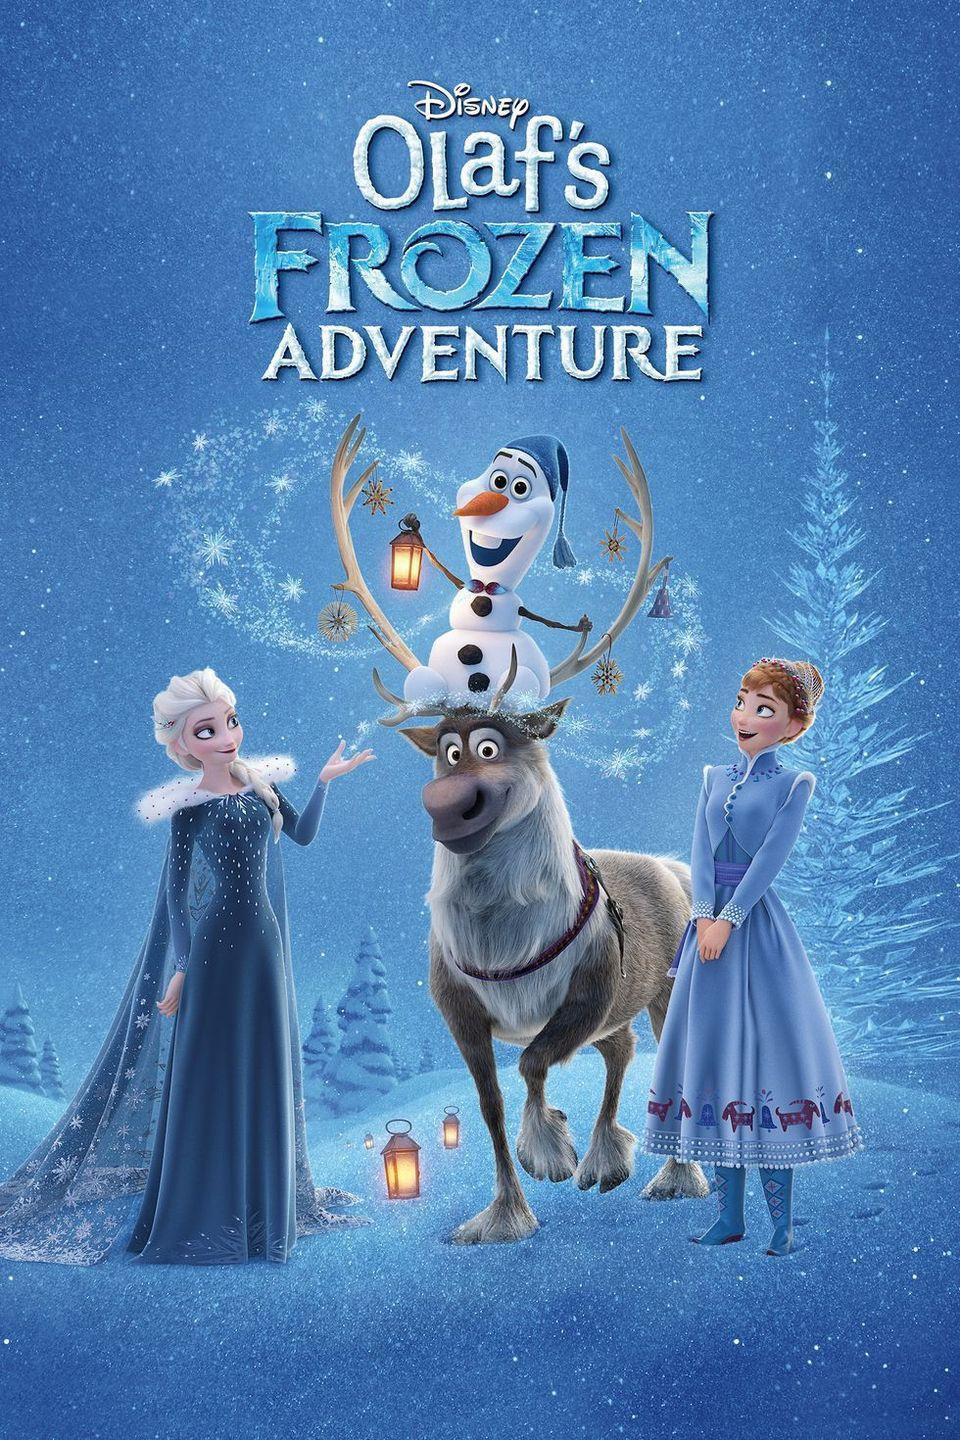 "<p><a class=""link rapid-noclick-resp"" href=""https://go.redirectingat.com?id=74968X1596630&url=https%3A%2F%2Fwww.disneyplus.com%2Fmovies%2Folafs-frozen-adventure%2F5zrFDkAANpLi&sref=https%3A%2F%2Fwww.womansday.com%2Flife%2Fentertainment%2Fg34694772%2Fdisney-christmas-movies%2F"" rel=""nofollow noopener"" target=""_blank"" data-ylk=""slk:STREAM NOW"">STREAM NOW</a></p><p><em>Frozen</em> is always appropriate for winter, but <em>Olaf's Frozen Adventure</em> is even more of a Christmas movie. When Anna and Elsa realize they have no holiday traditions, Olaf decides to save Christmas by finding some of their very own. </p>"